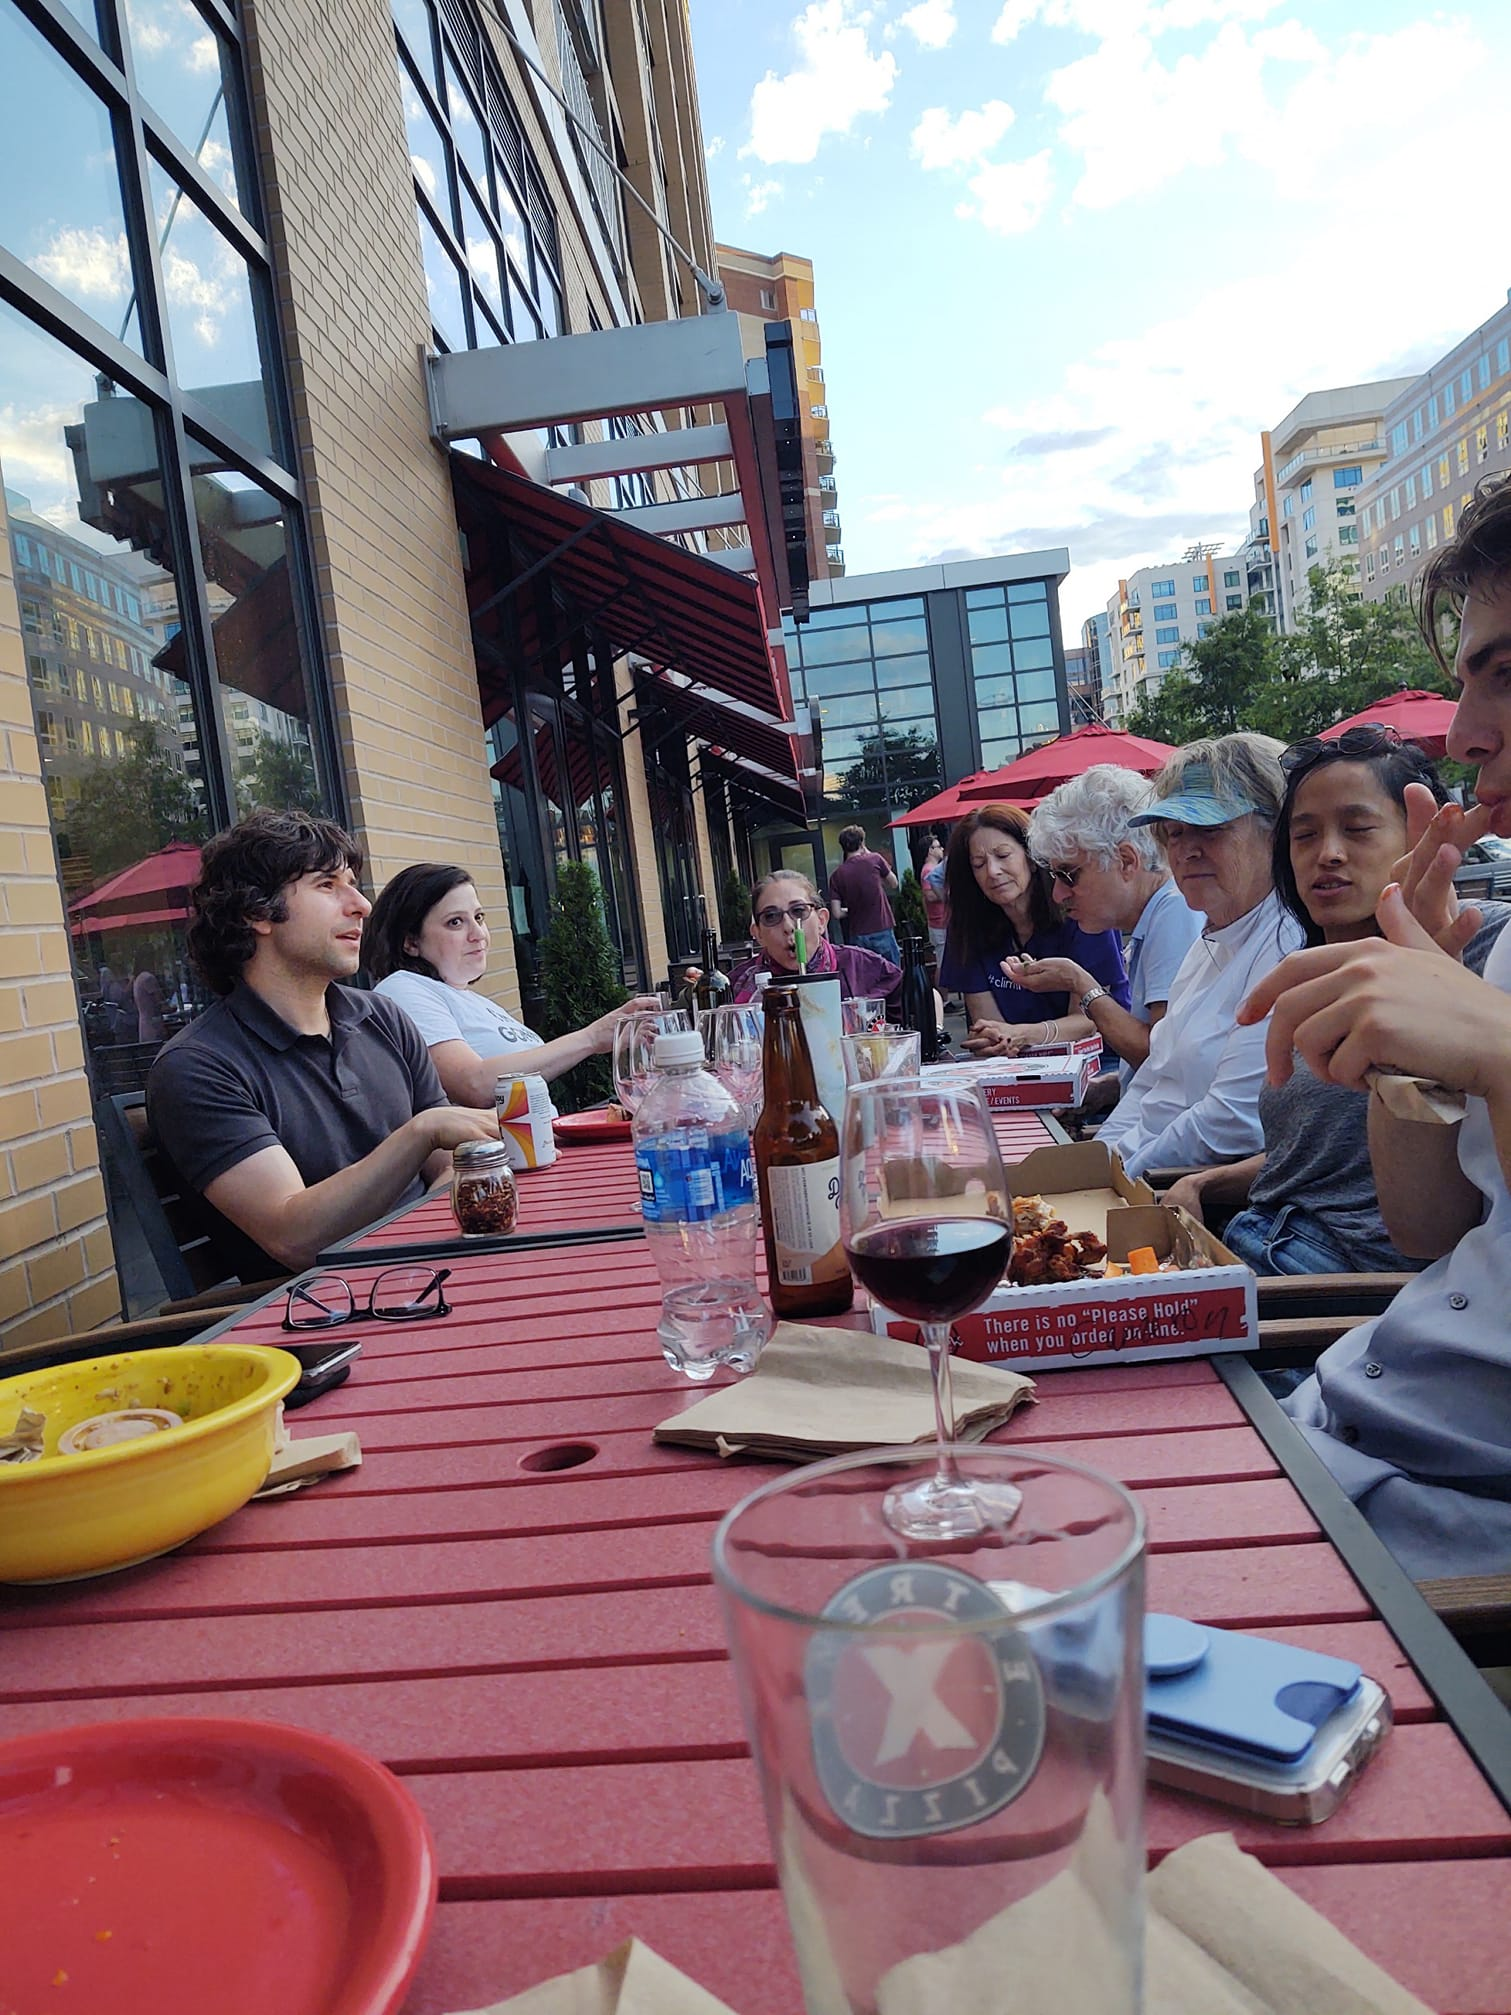 Although we are still careful, now that rules about gathering in smaller groups are slightly relaxed, it was nice to have a pizza dinner outside with family, 6-21.